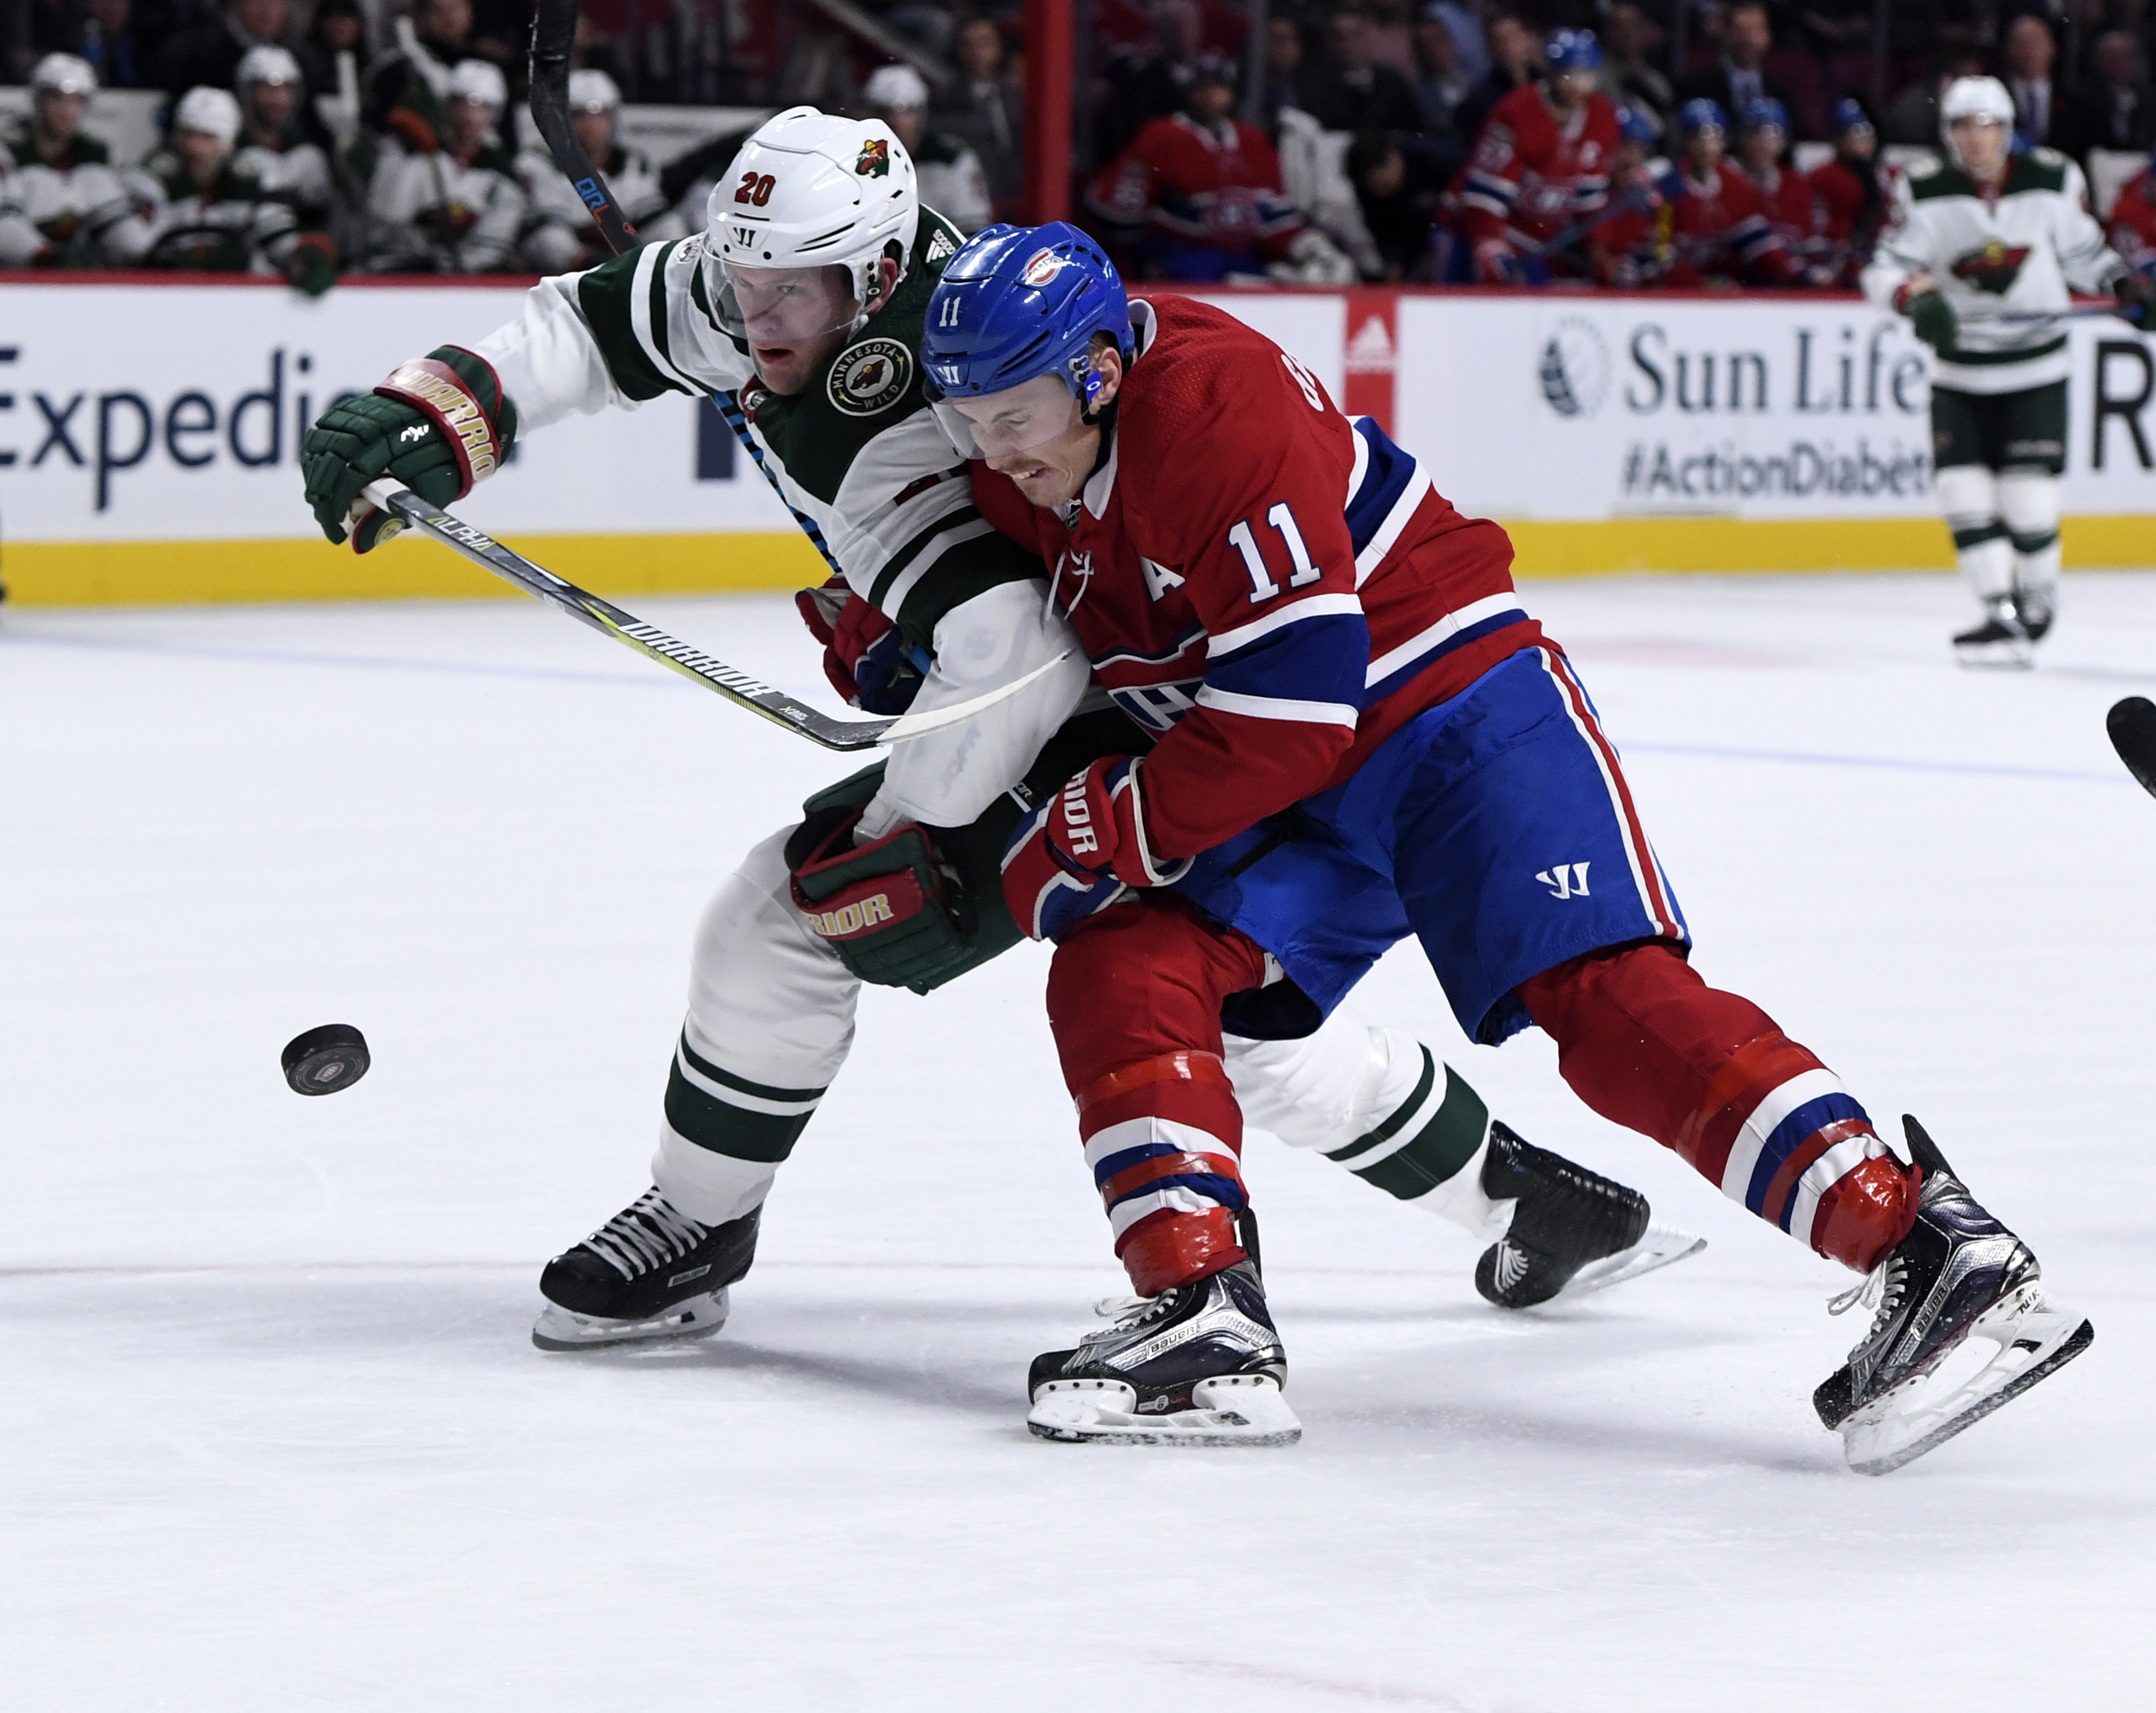 Game Preview: Minnesota Wild vs. Montreal Canadiens 12/11/18 @ 7:00PM CST at Xcel Energy Center